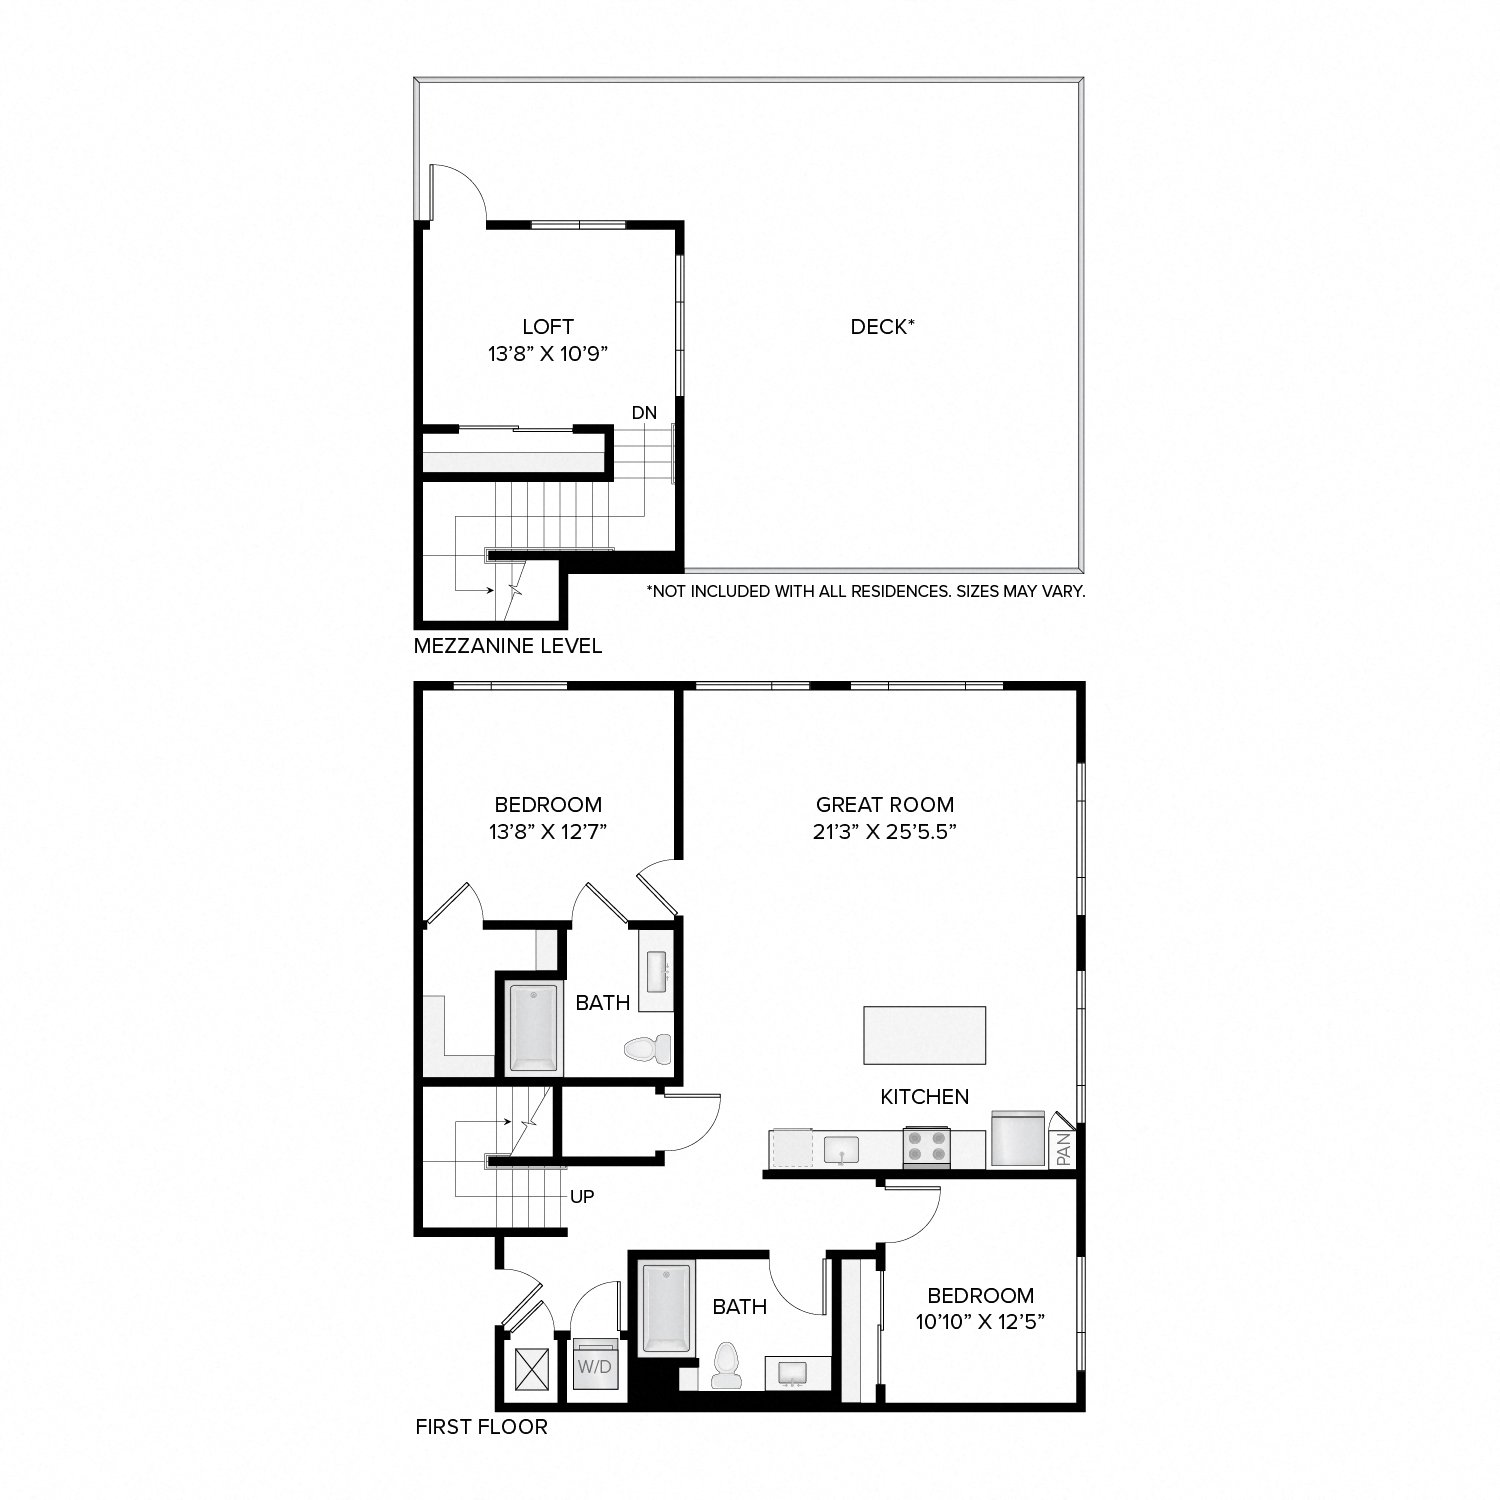 Diagram of the Clay Deluxe Loft floor plan. Two bedrooms, two bathrooms, an open kitchen and living area, a loft, a washer dryer, and in select residences, a deck.